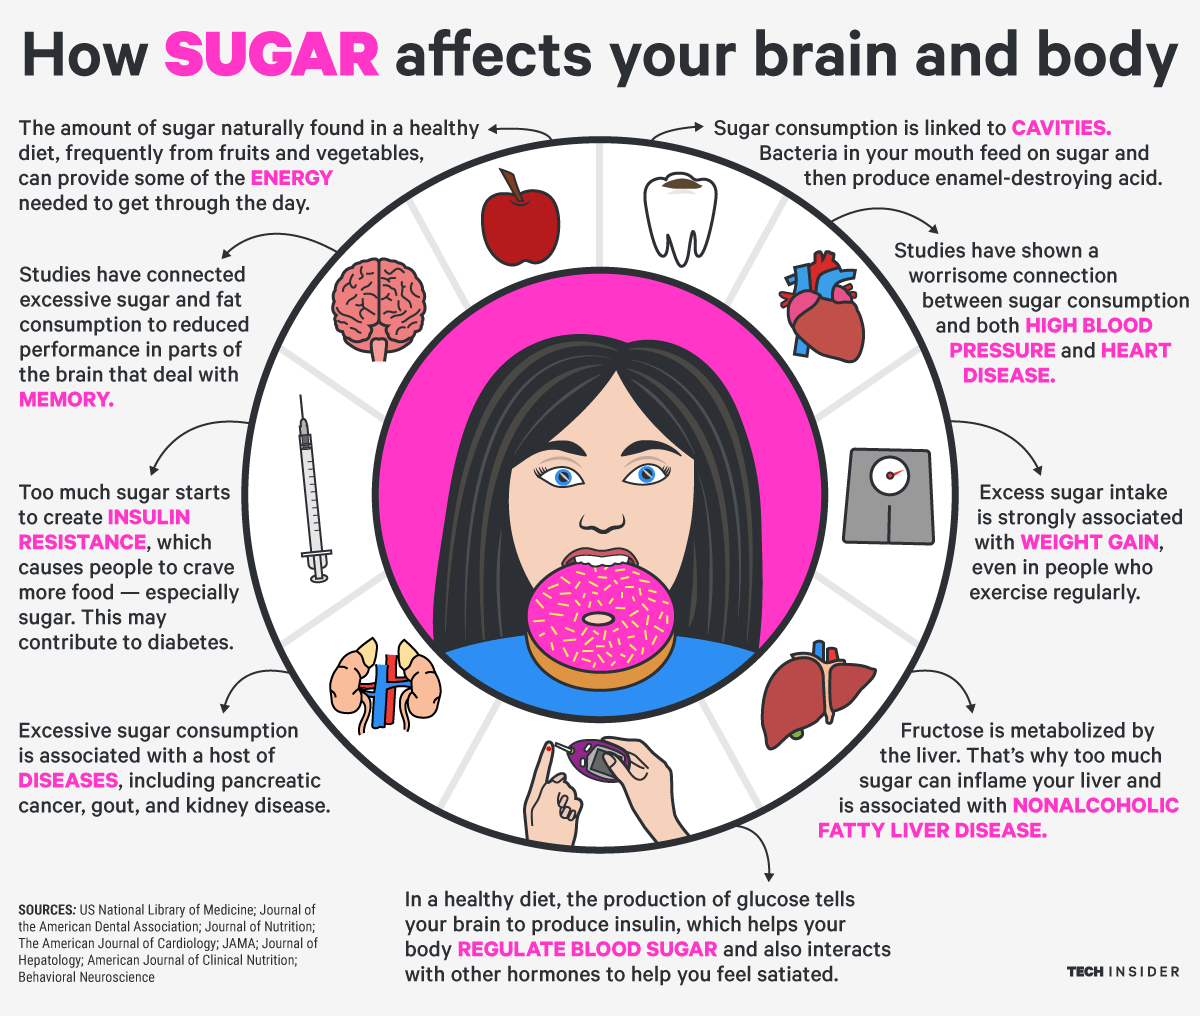 techinsider: Here's how eating sugar affects your body and brain